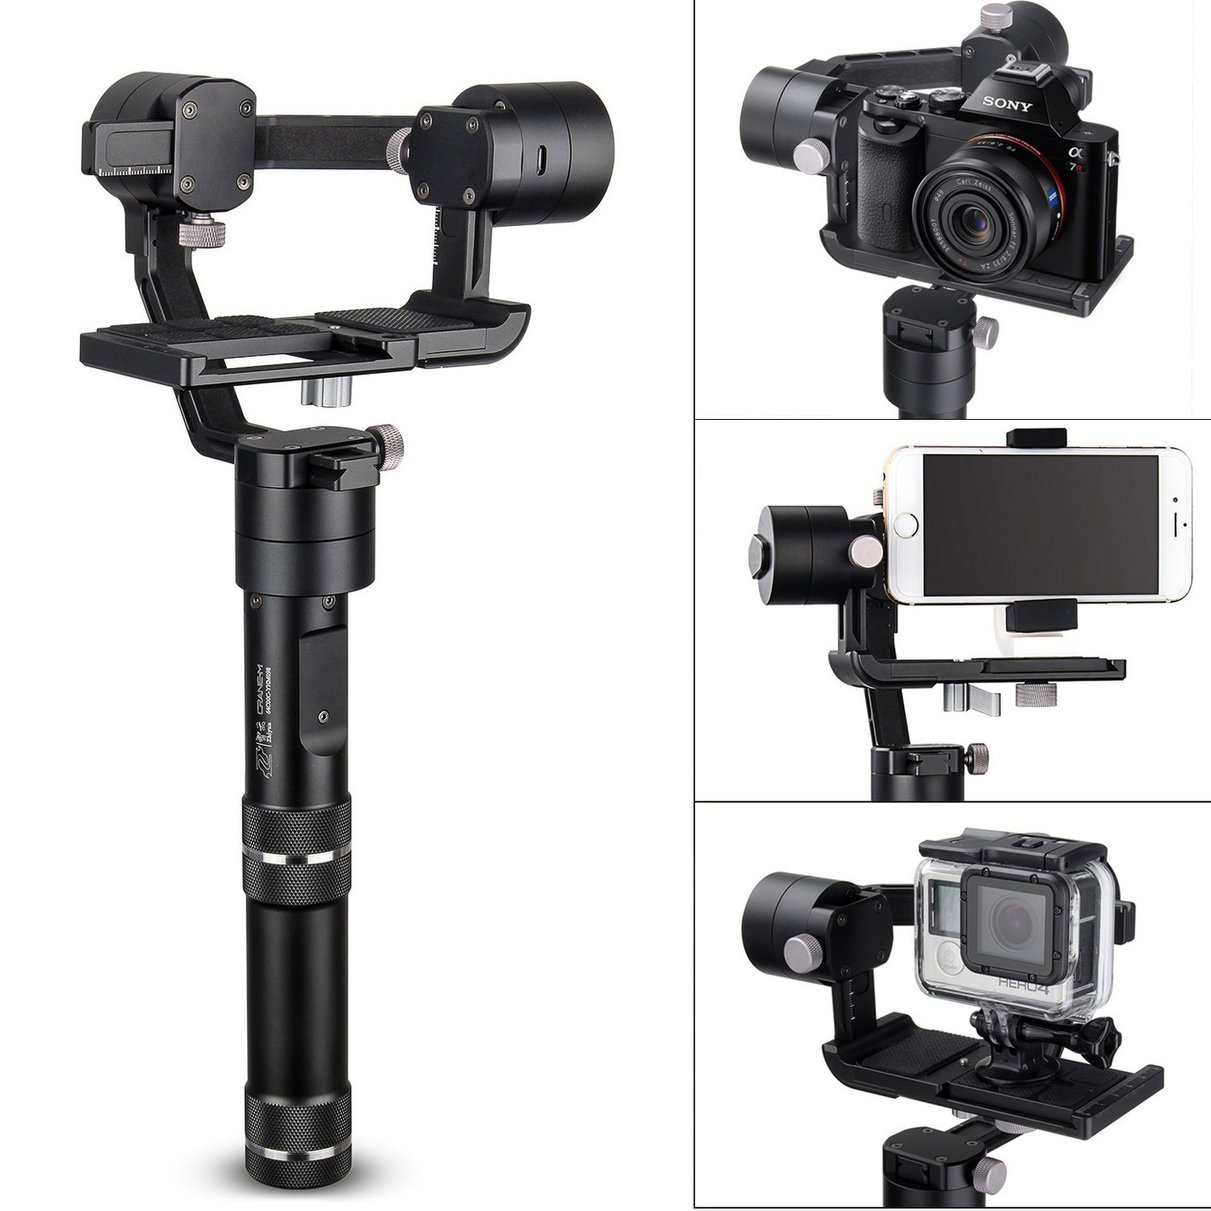 Zhiyun Crane M 3-Axis Stabilizer Gimbal for Sony ILCE Series a6300 a5100 a6000 new version smallrig cage for sony a6300 a6000 a6500 ilce 6000 ilce 6300 ilce a6500 sony nex 7 cage 1661